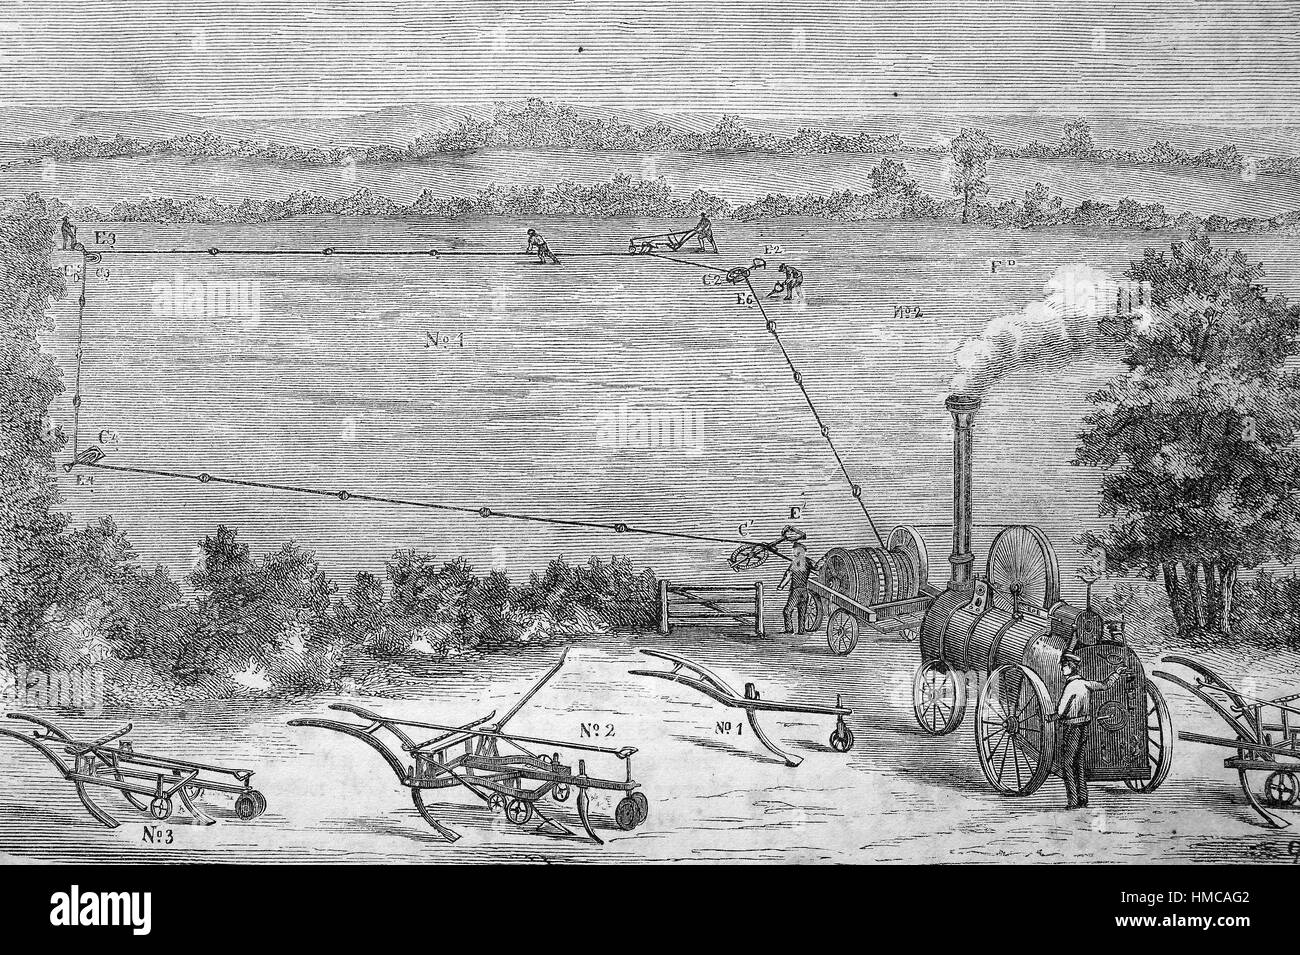 A steam plow is a steam powered plow. It was invented in the middle of the 19th century and was a first step in - Stock Image